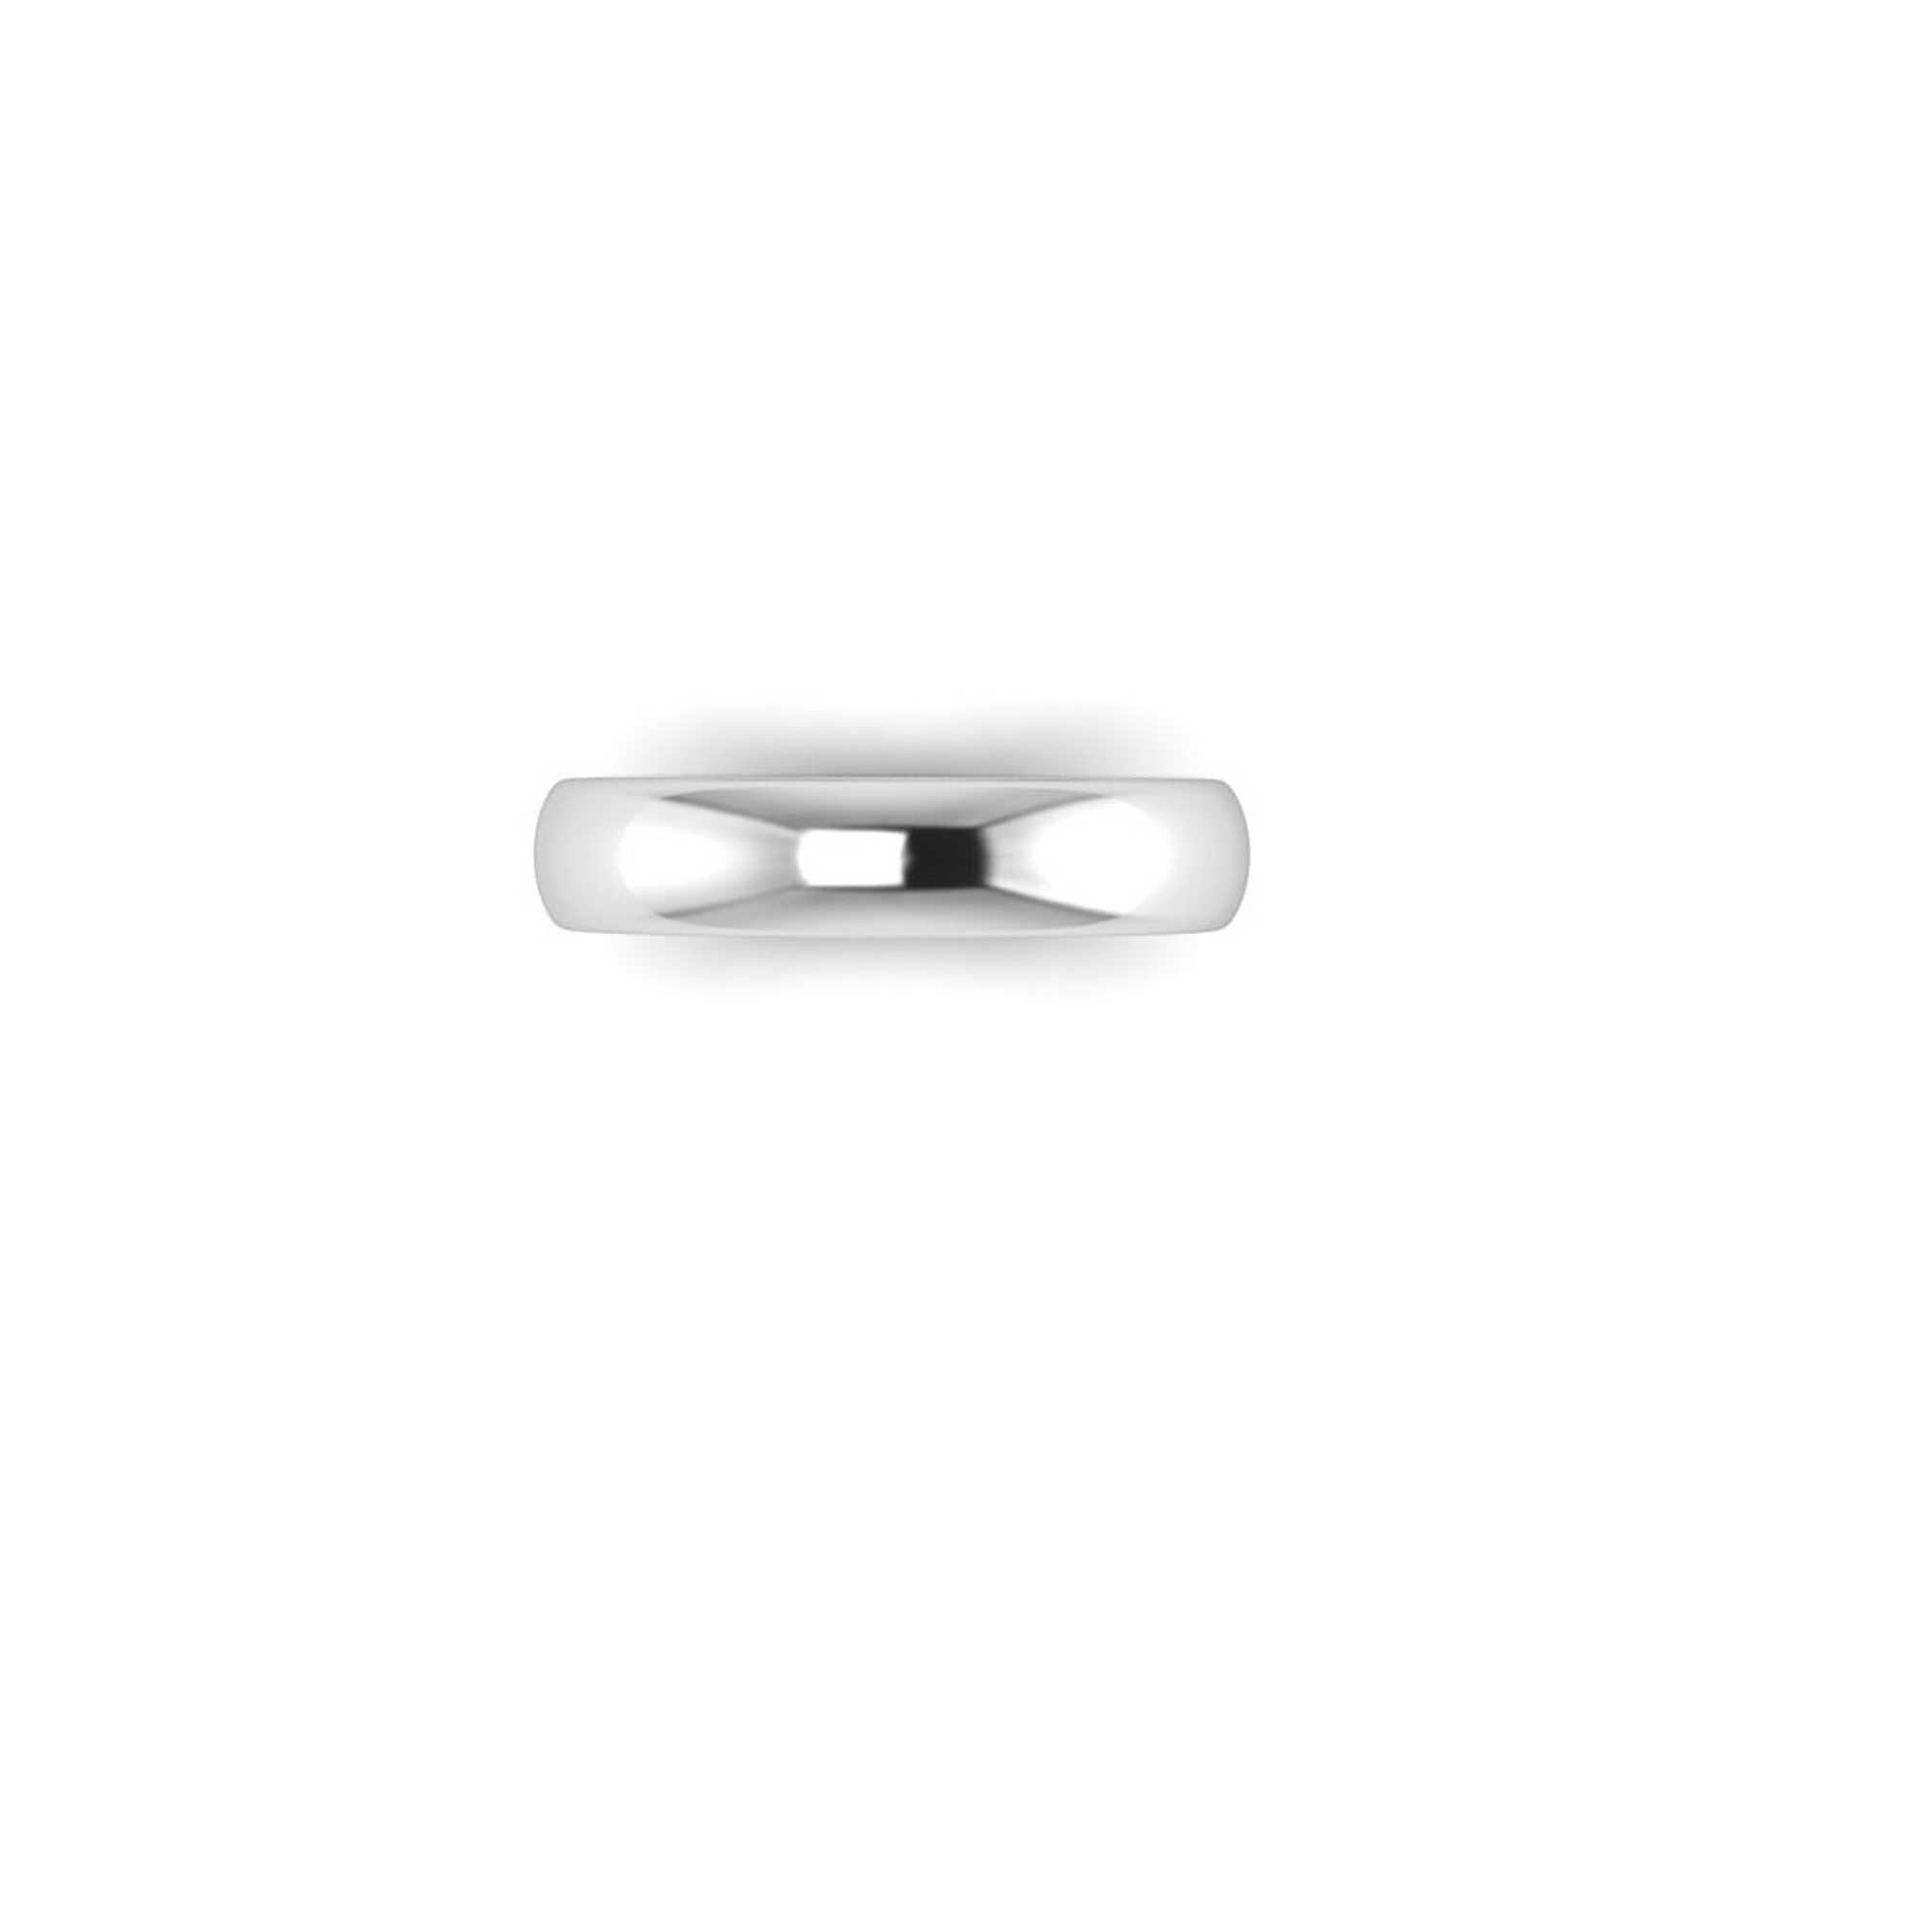 Media Caña Wedding Rings